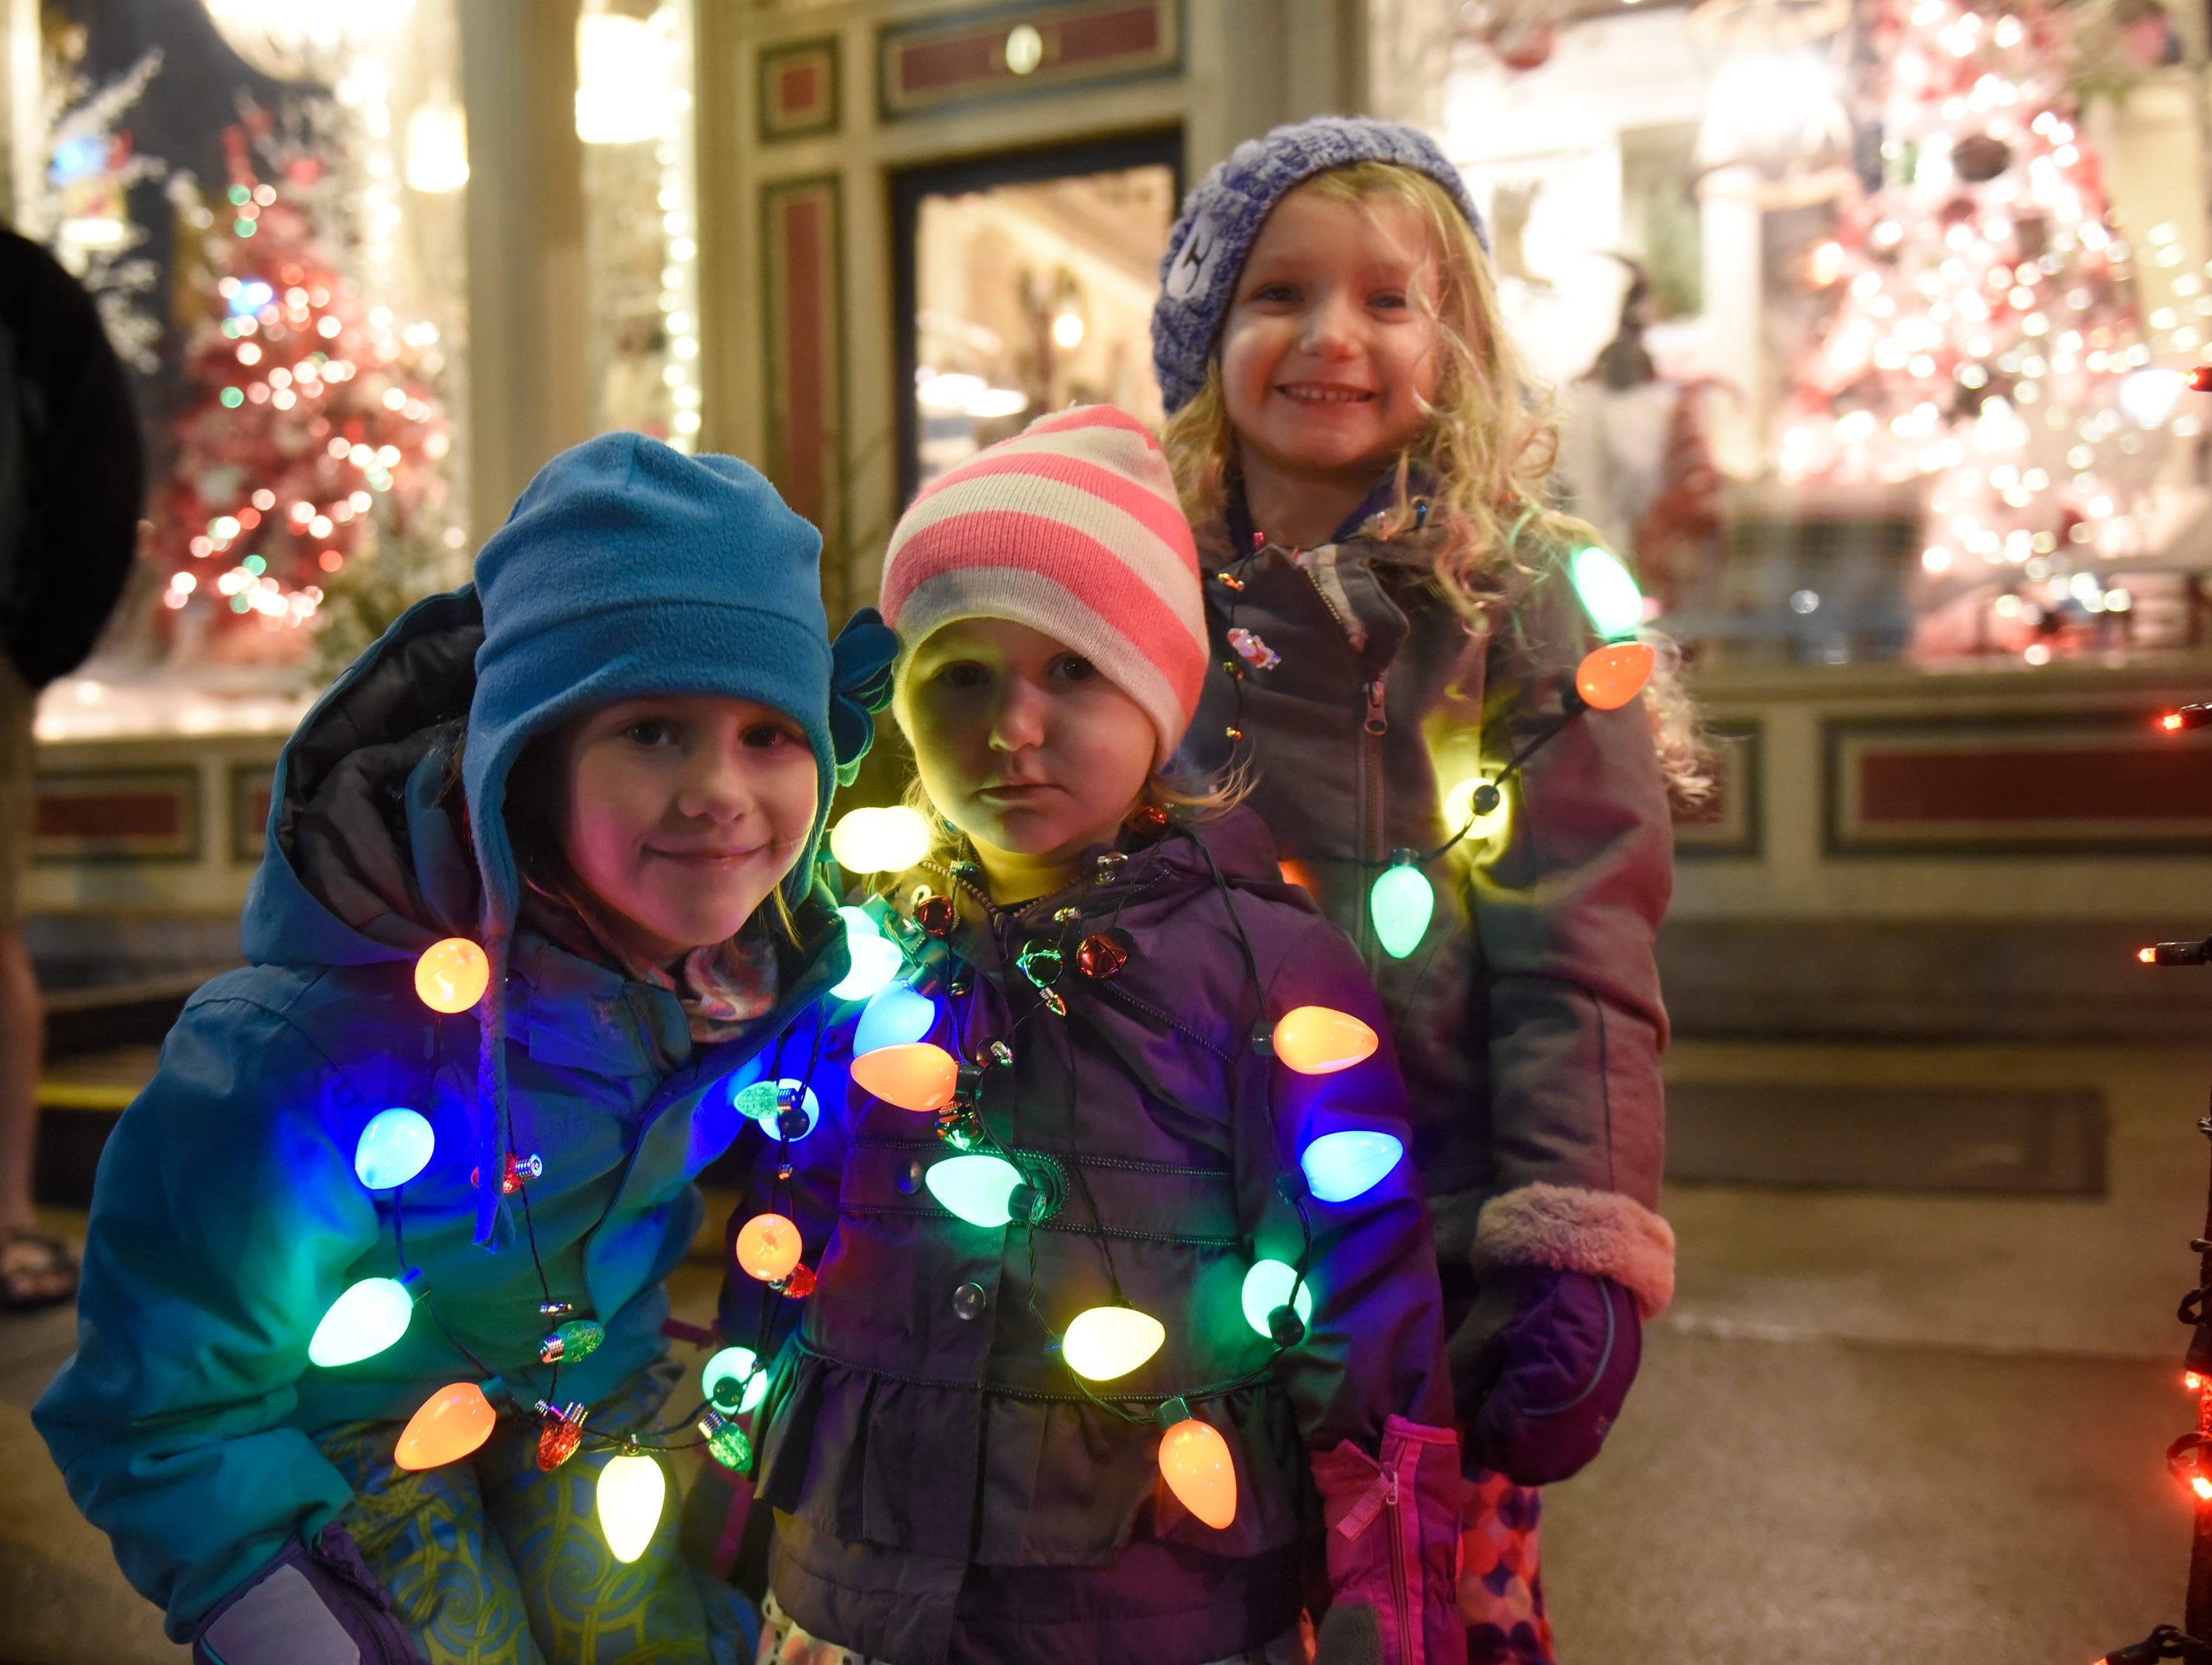 Anna, 5, (left) and Mia, 2, Fontecchio along with Jillian Tratechaud, 6, are ready for the start of South Lyon's Cool Yule Lighted Parade Dec. 1, 2018.